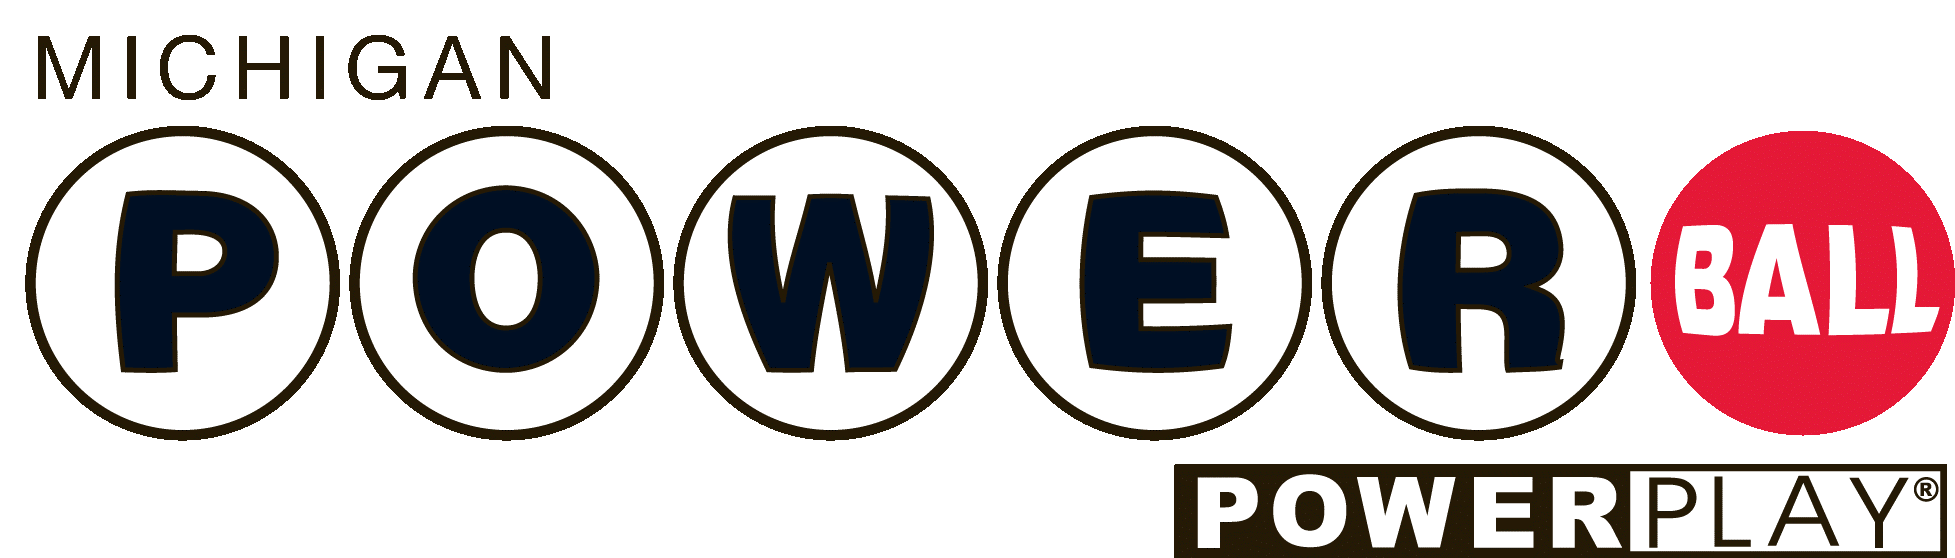 Michigan Powerball Logo